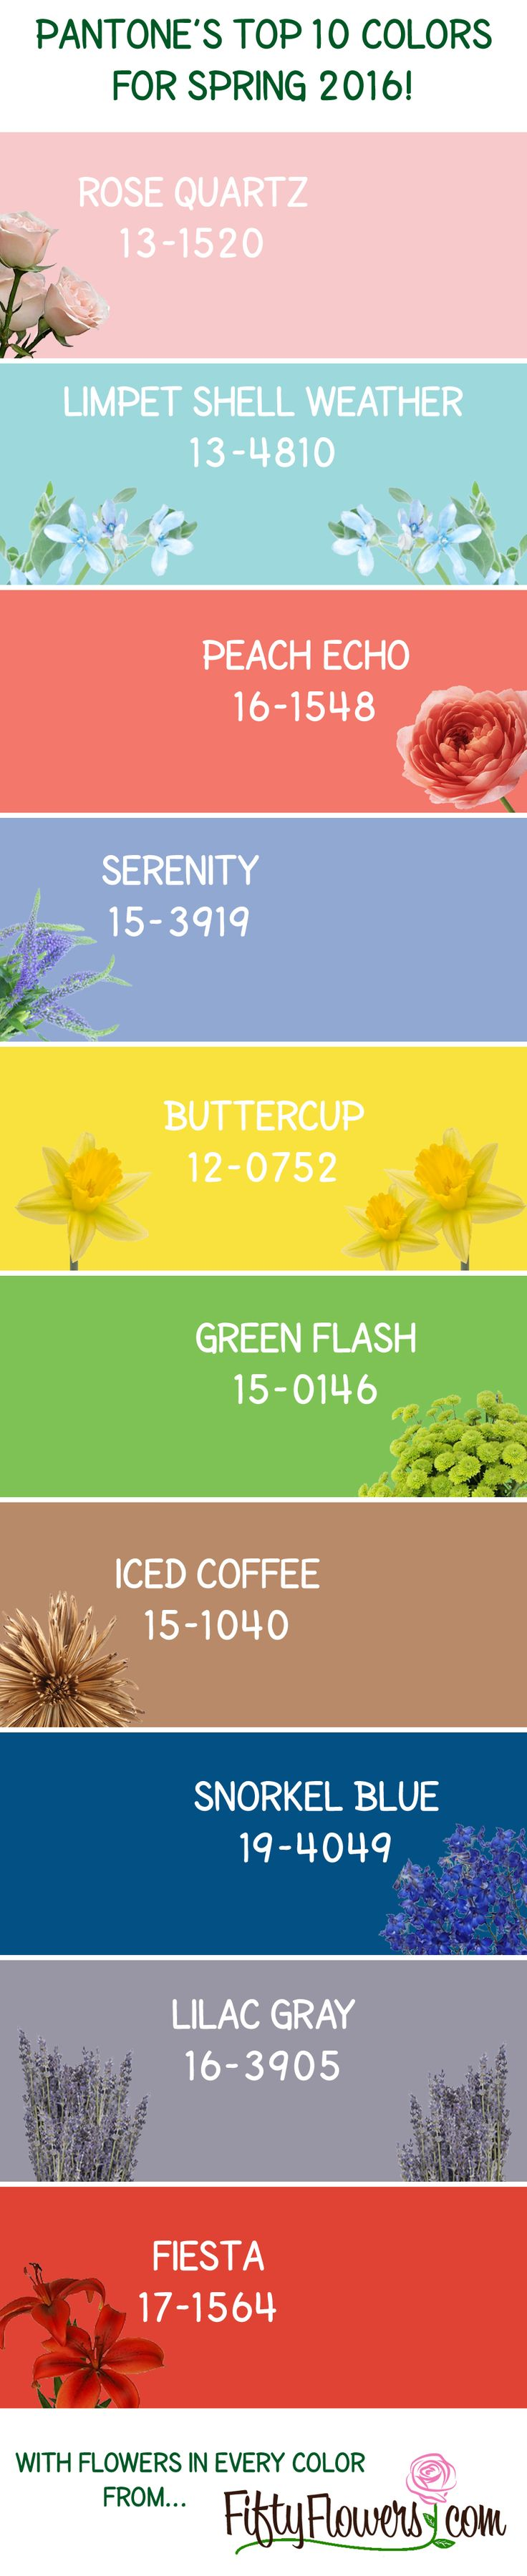 Pantone's Top 10 Colors for Spring 2016 with Wholesale Flowers in Every Color from FiftyFlowers.com